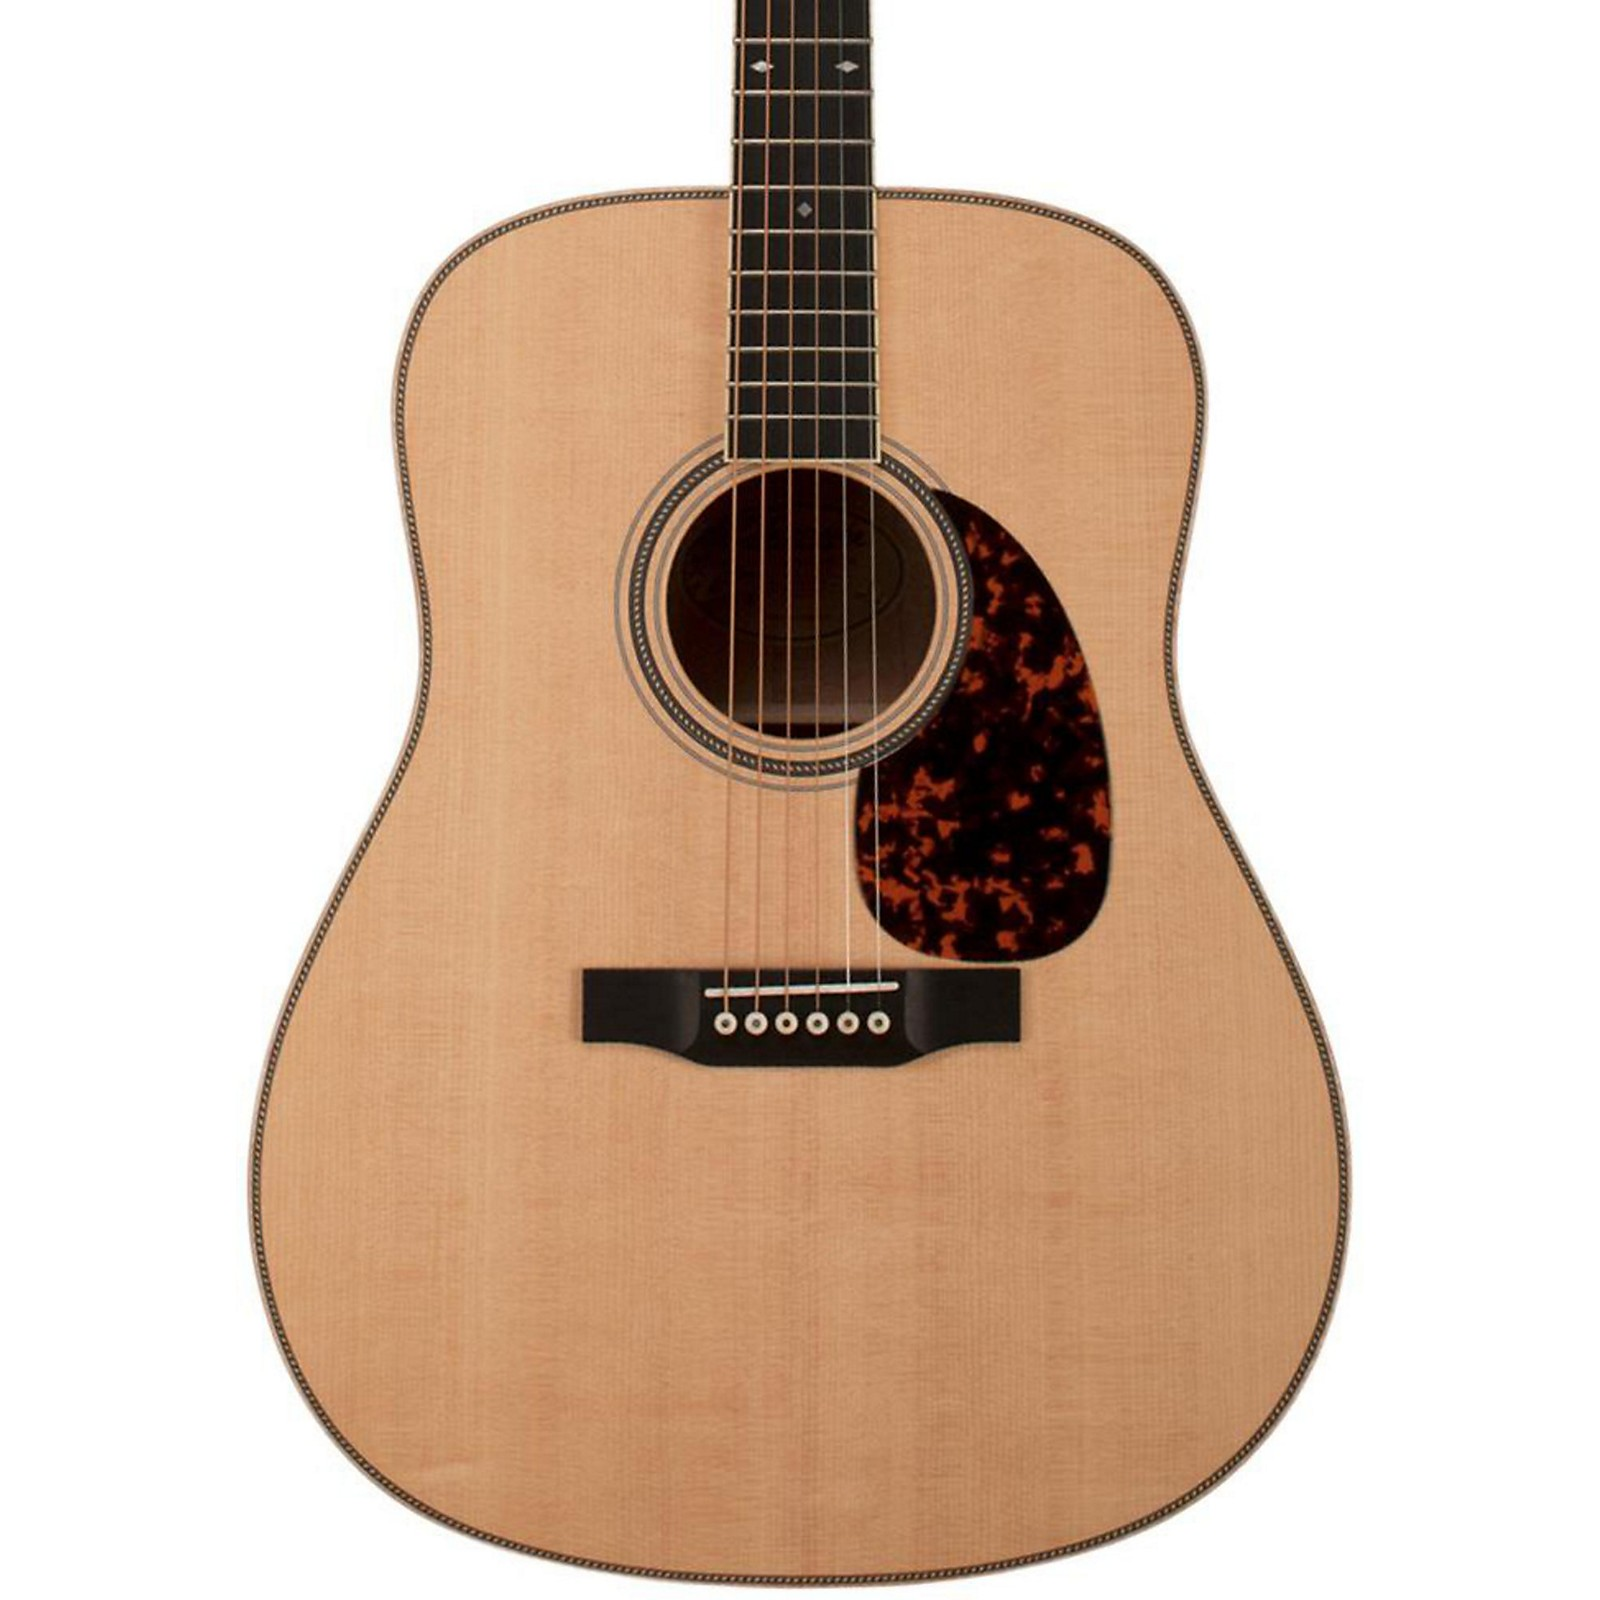 Open Box Larrivee D-40 Legacy Dreadnought Rosewood Acoustic Guitar